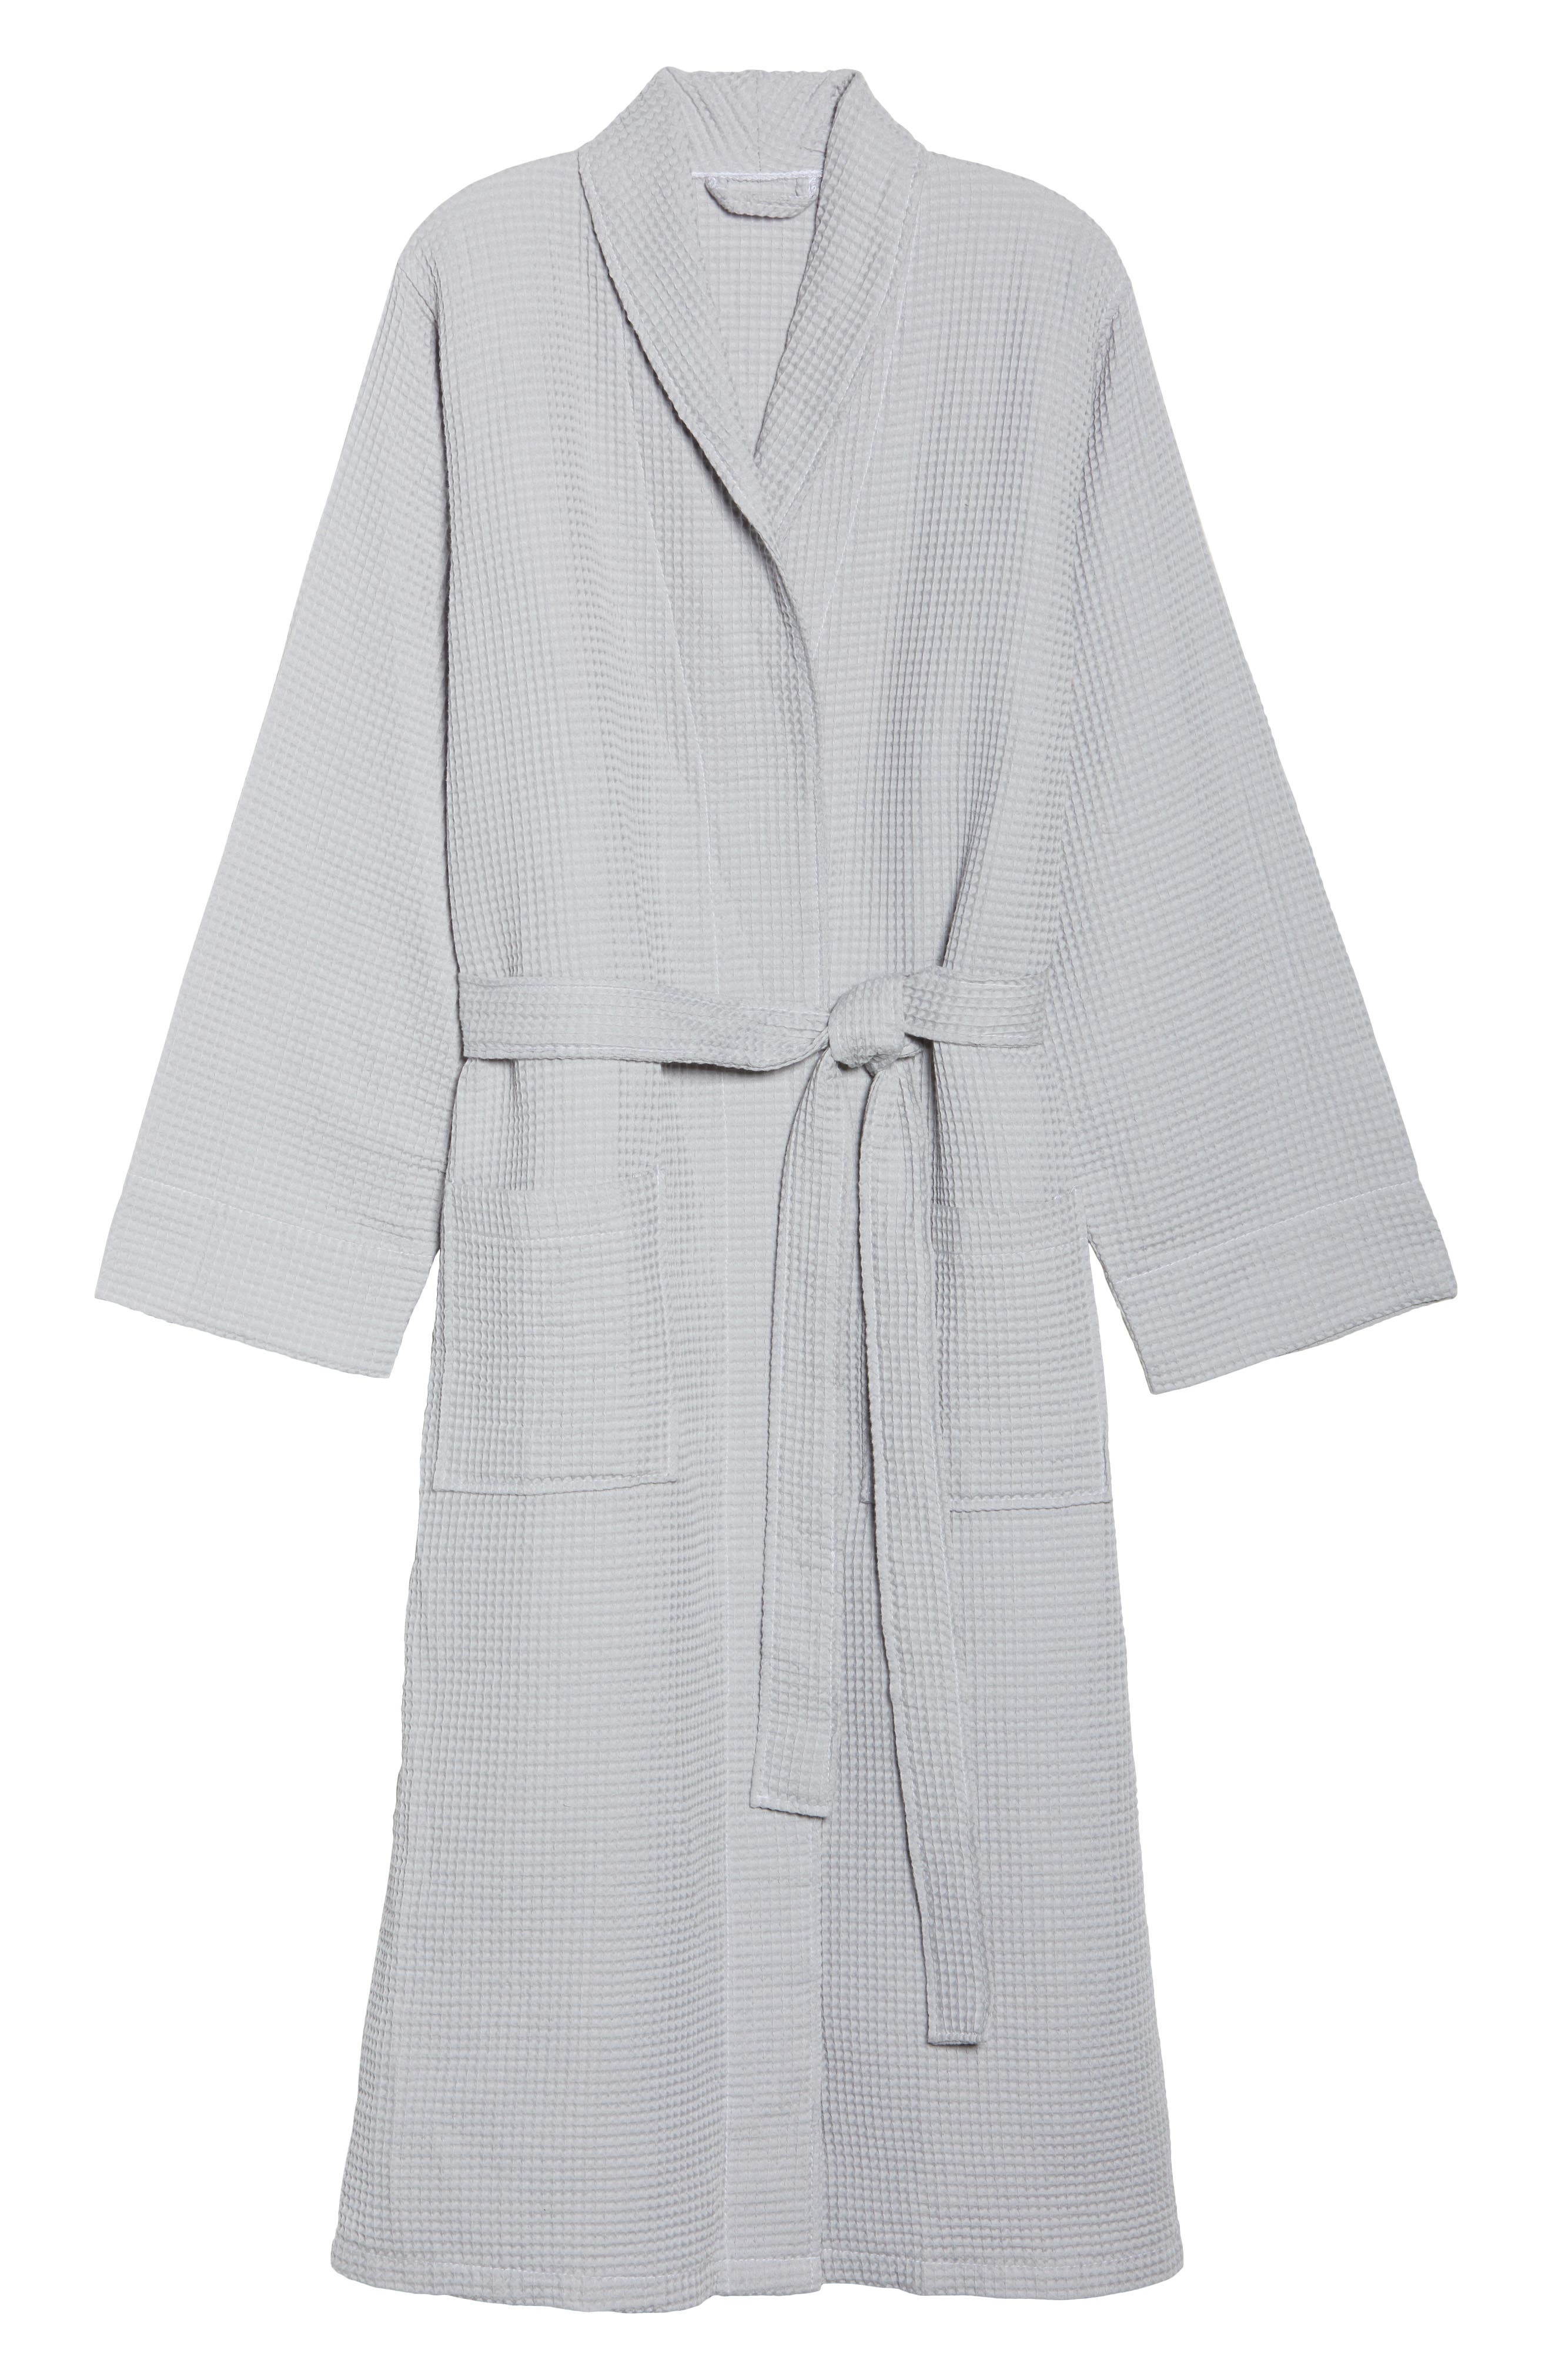 Waffle Knit Cotton Robe,                             Alternate thumbnail 6, color,                             059